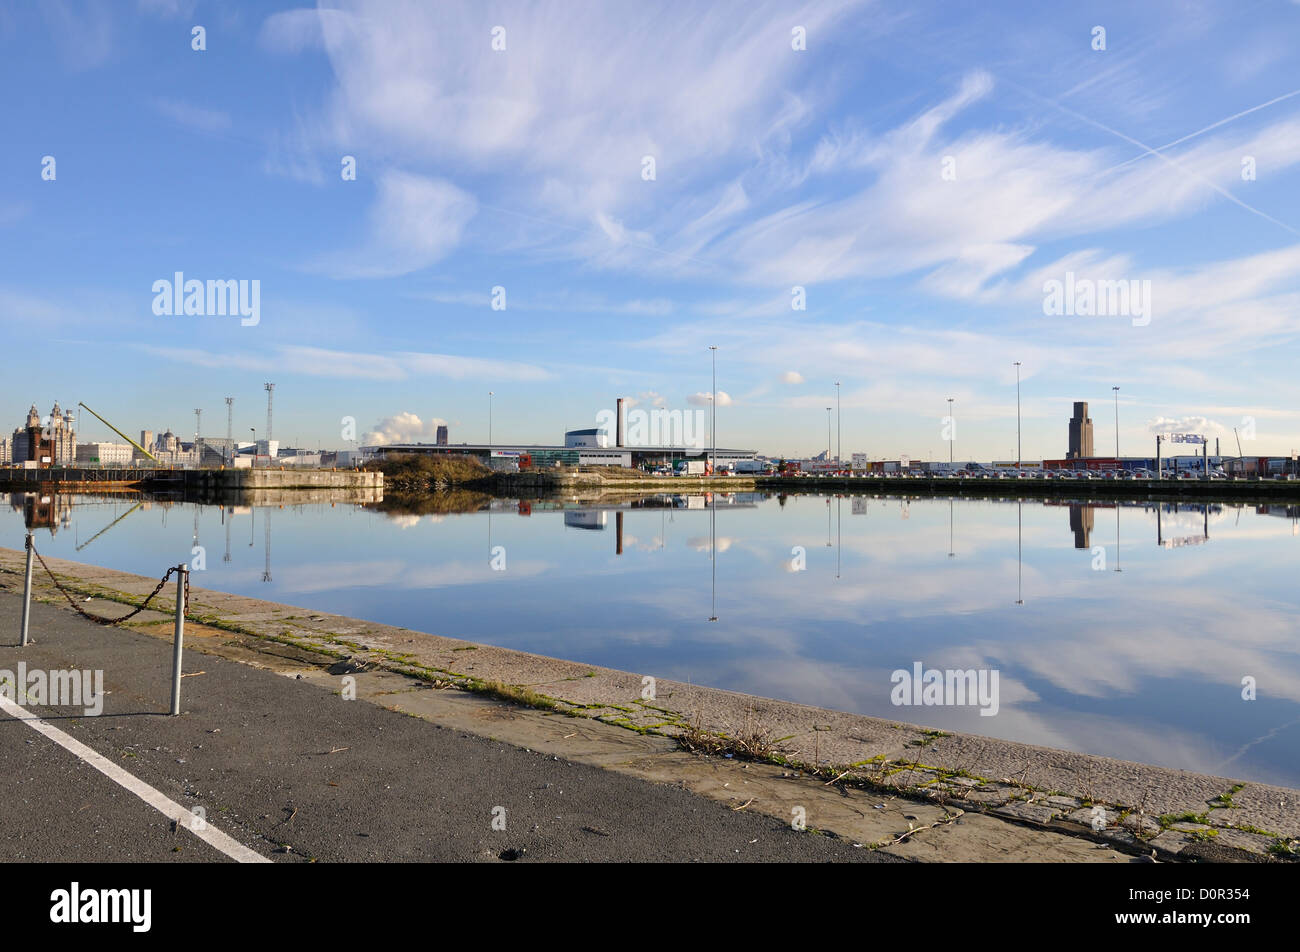 A deserted quayside on the River Mersey - Stock Image